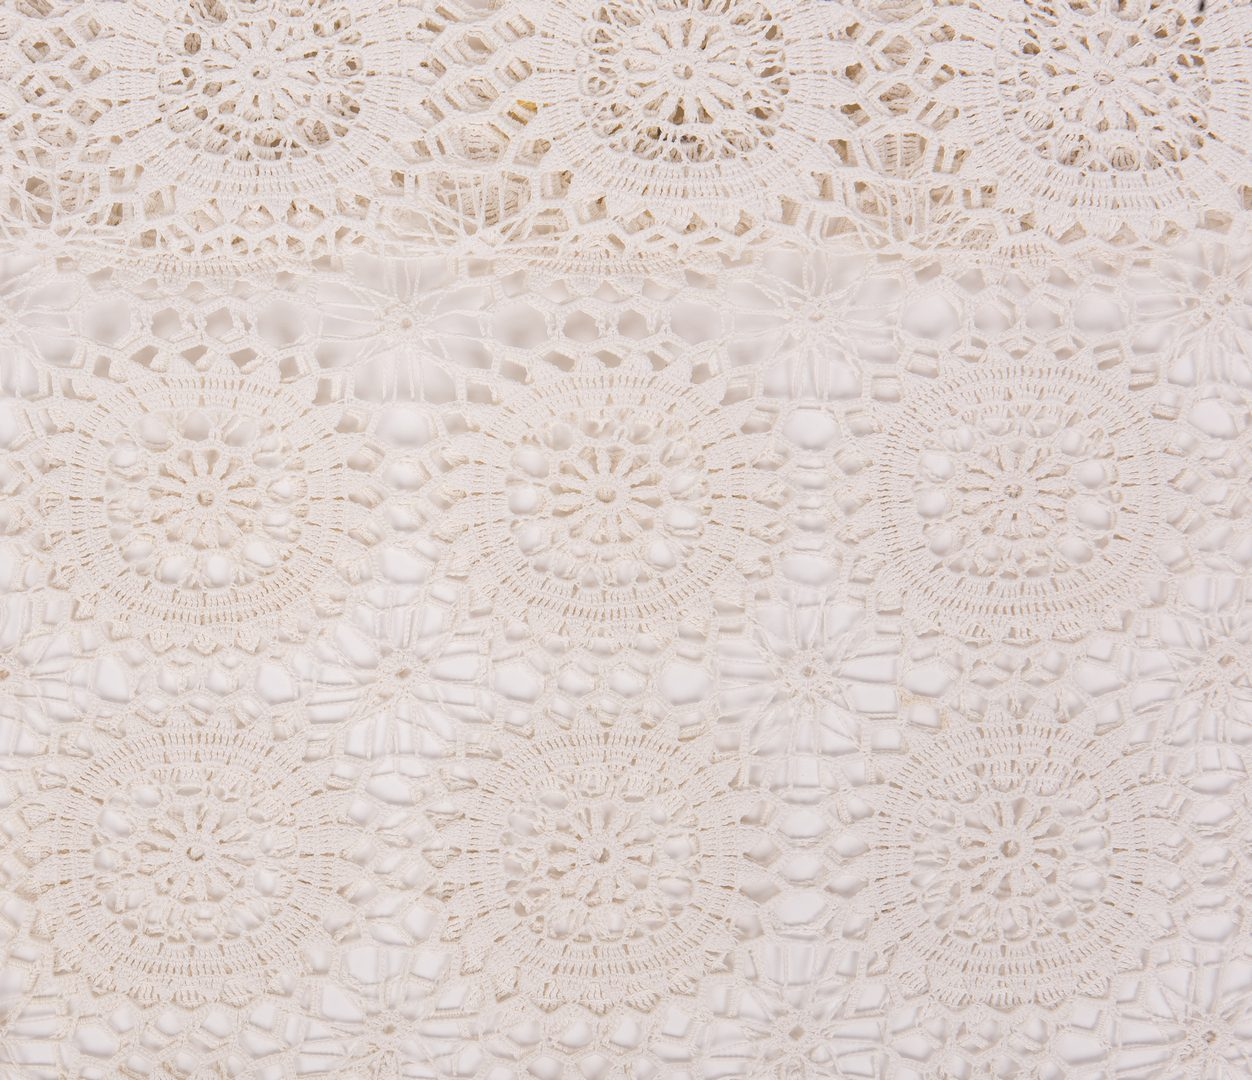 Lot 390: 5 East TN Quilts & 1 Crochet Bed Covering